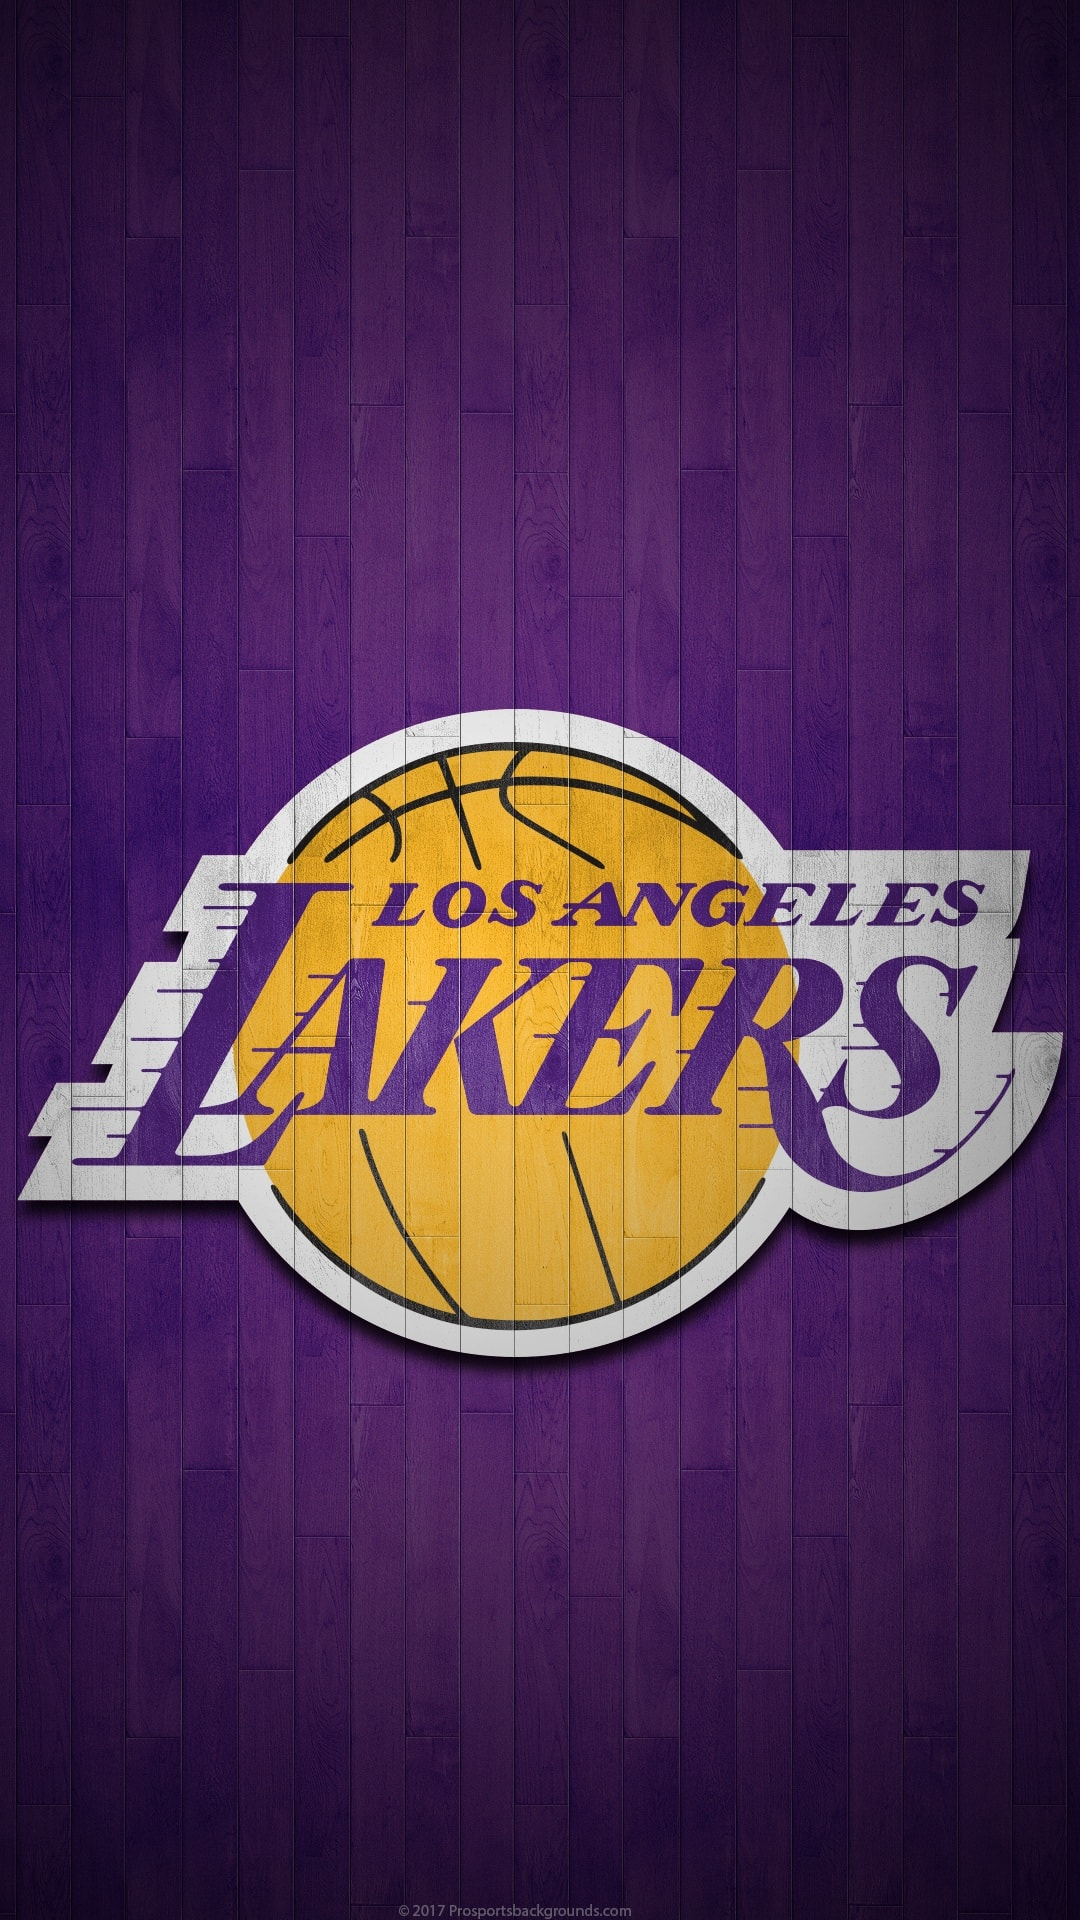 Los Angeles Lakers Phone Wallpapers - KoLPaPer - Awesome ...